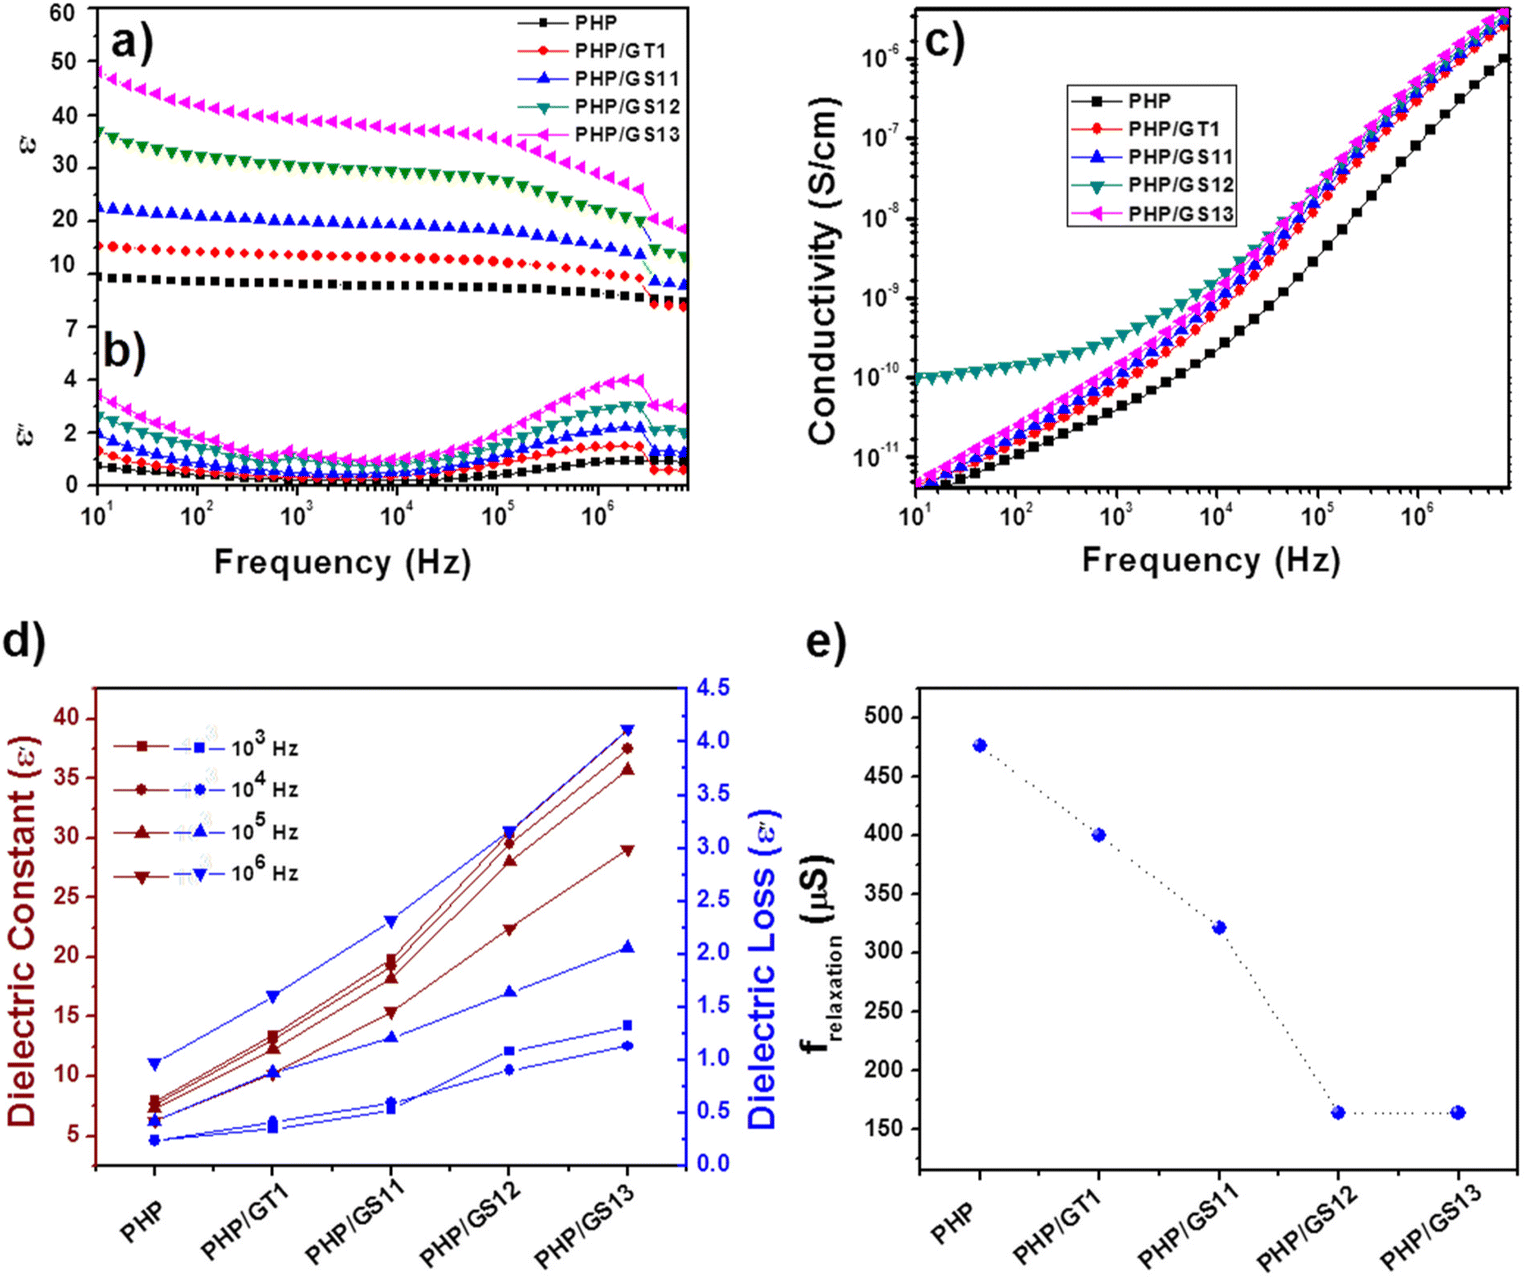 Stretchable Quaternary Phasic Pvdf Hfp Nanocomposite Films Charge Amplifier Connected To The Equivalent Electrical Circuit Open Image In New Window